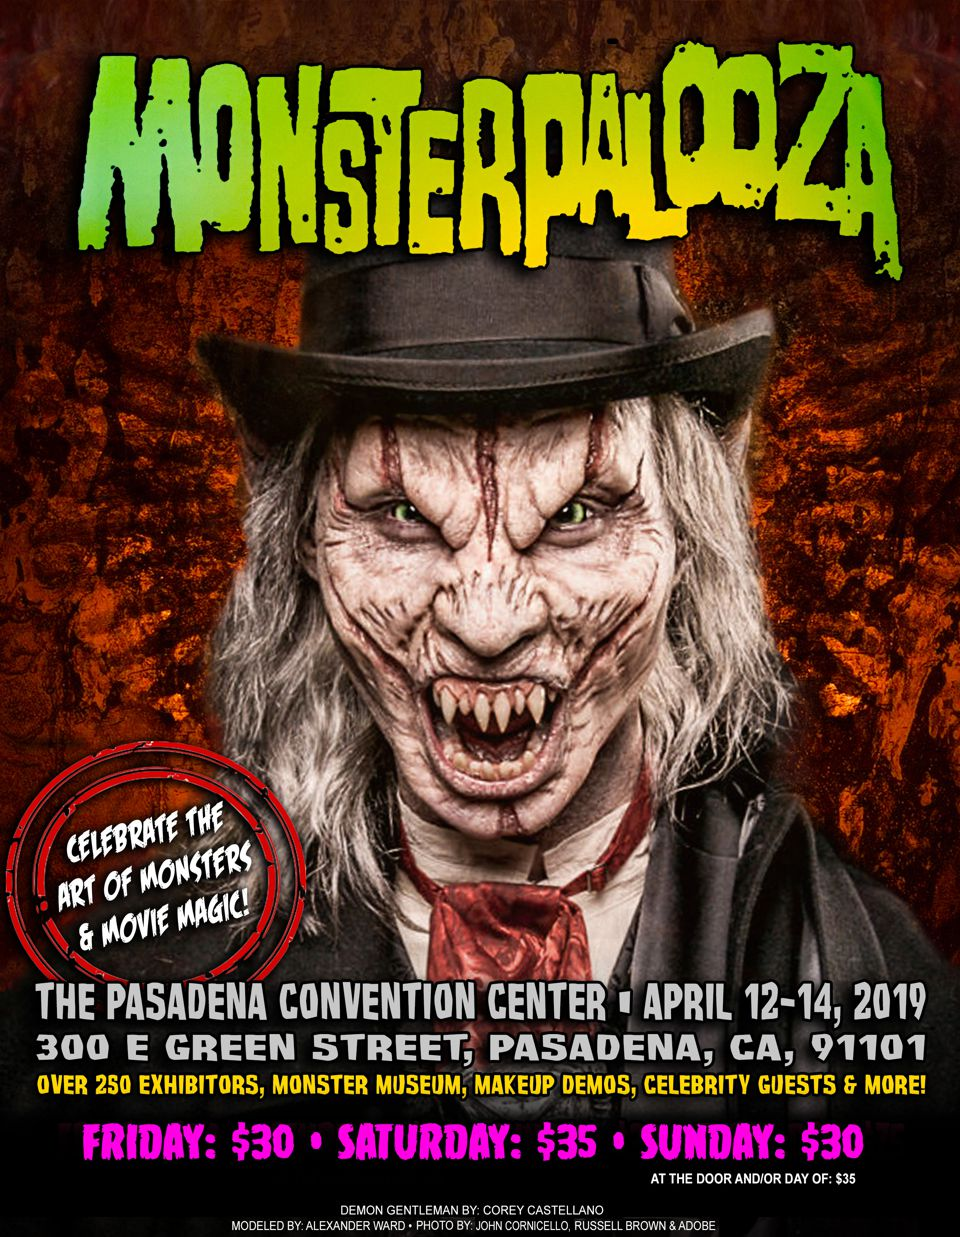 [Bild: monsterpalooza2019-v0bakqe.jpg]